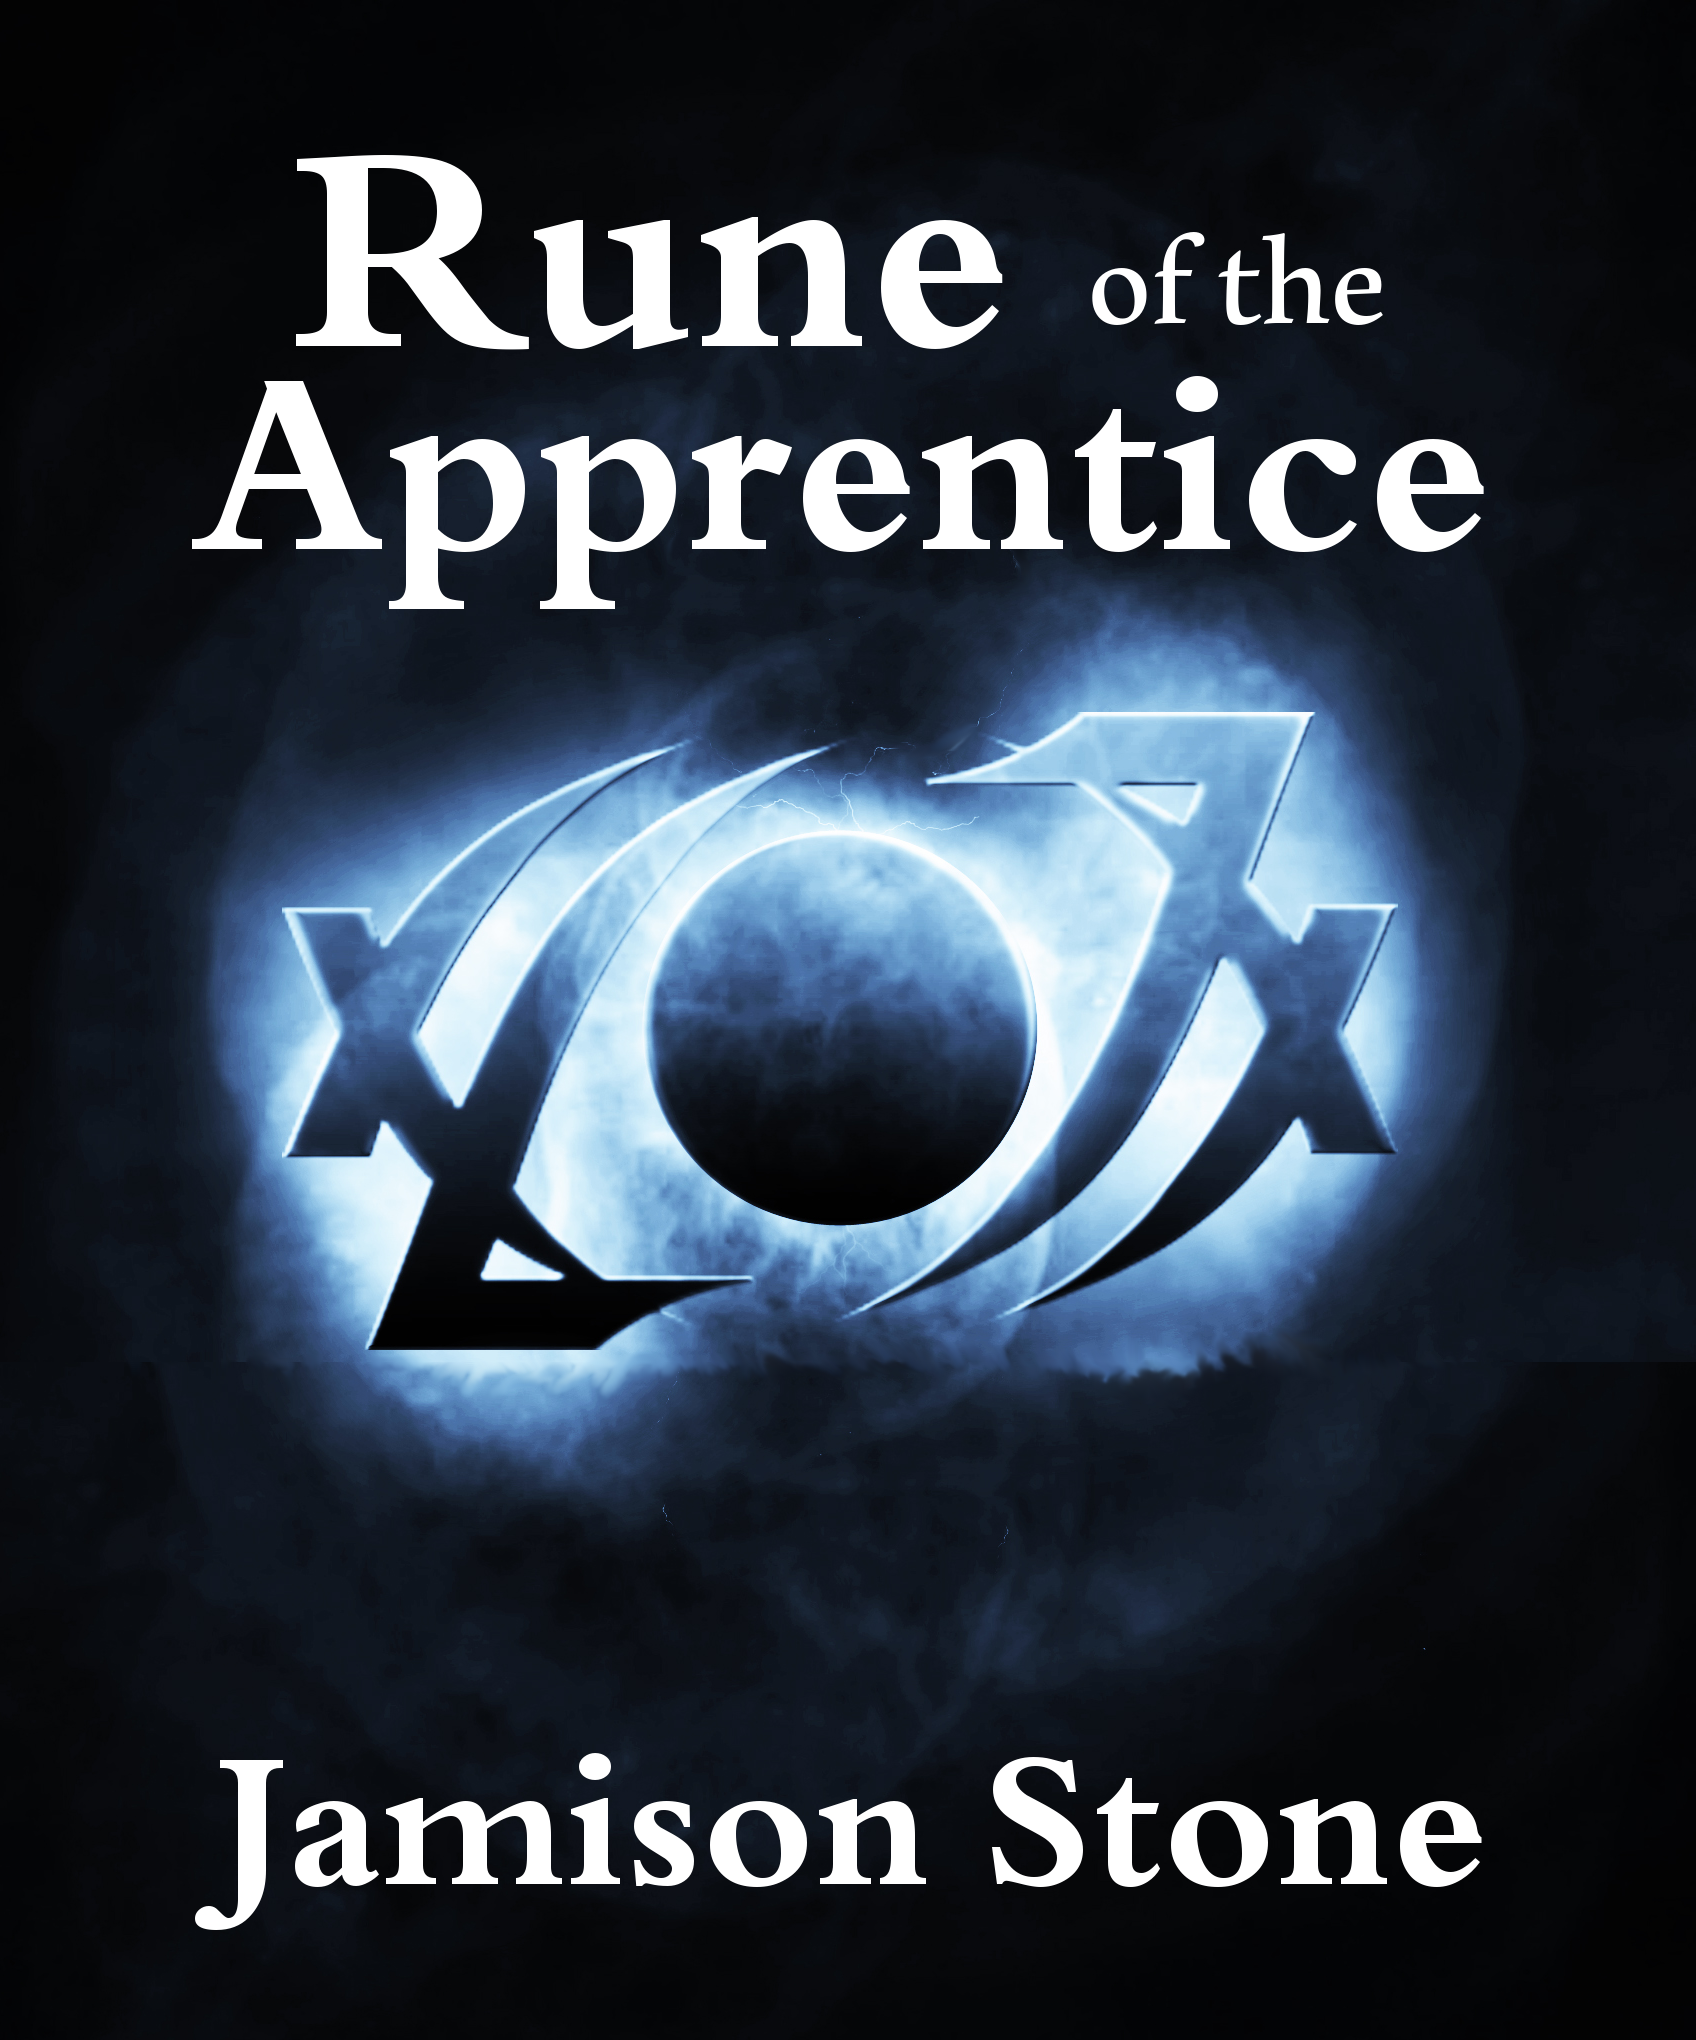 Rune_of_the_Apprentice